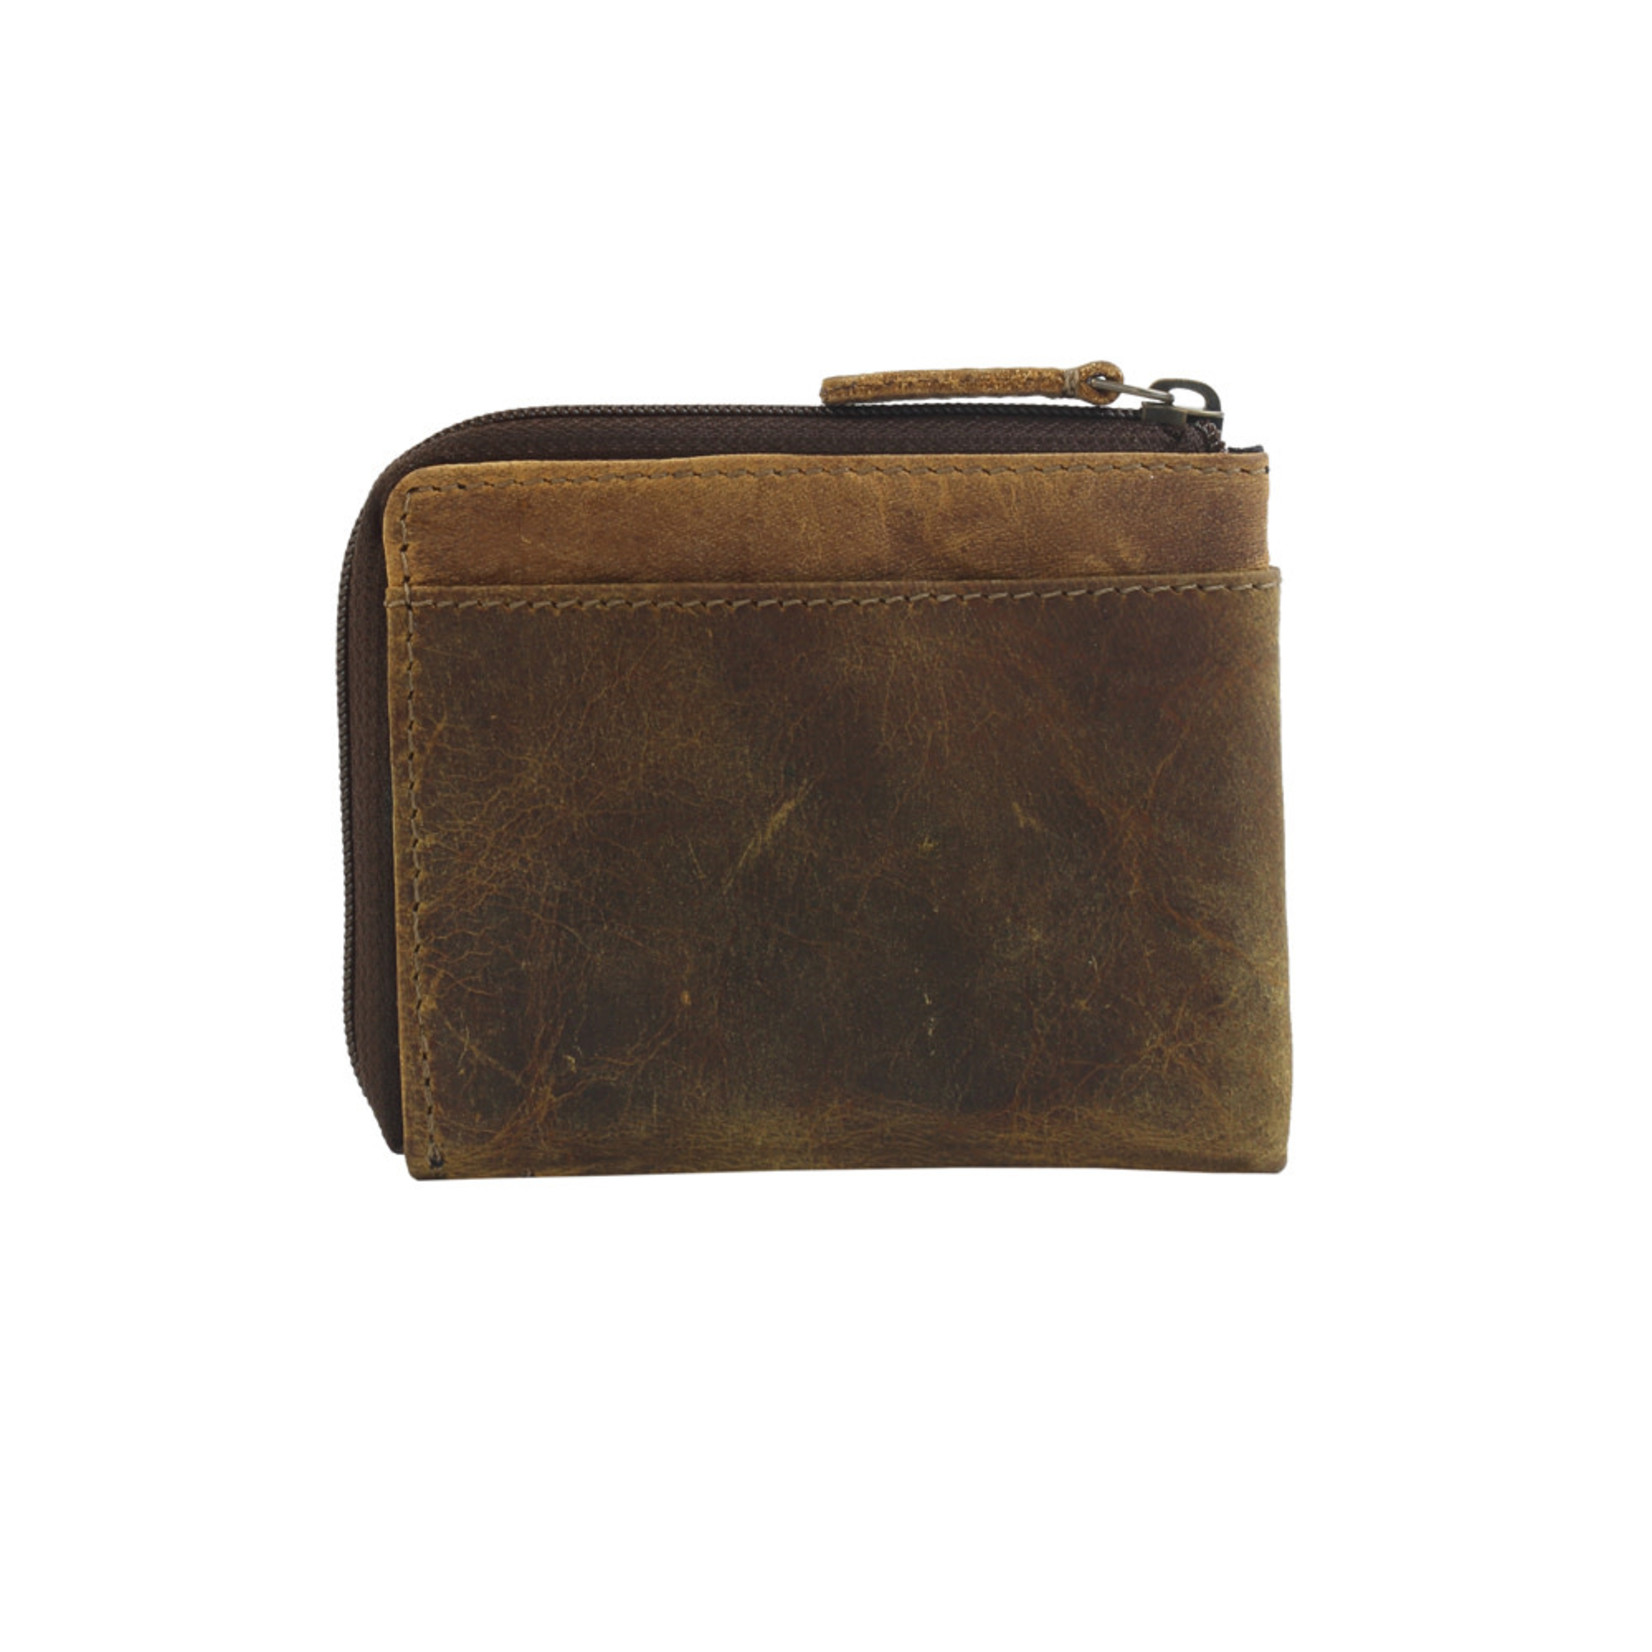 Myra Bags S-2711 Brown Glaze Leather Wallet